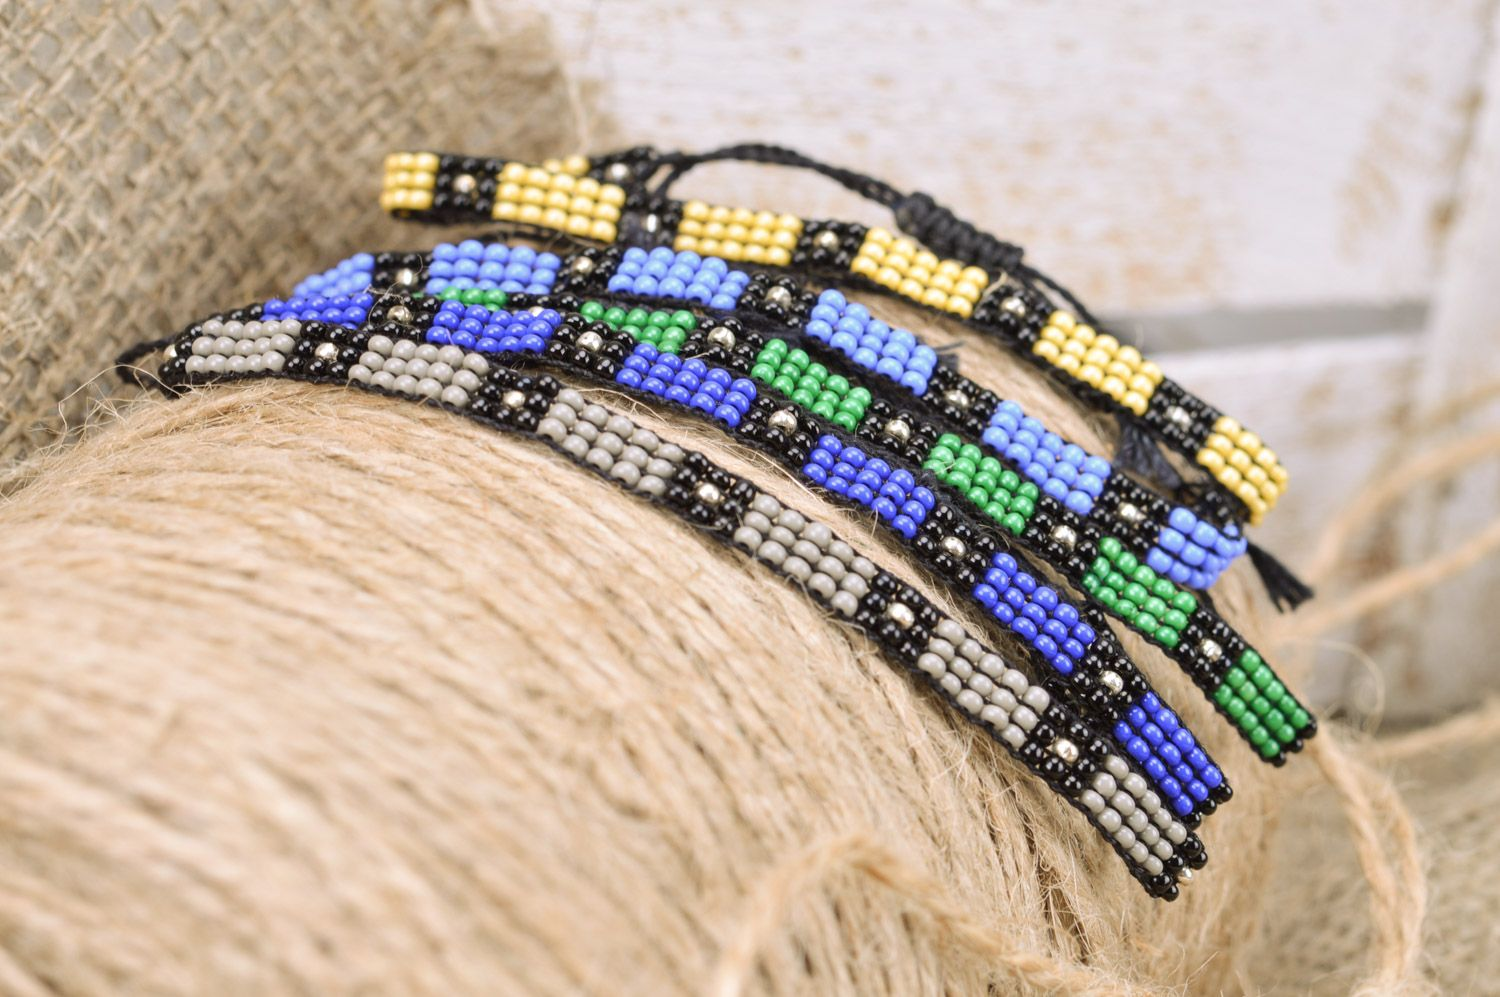 textile bracelets Set of bright handmade men's woven bead wrist bracelets with ties 5 pieces - MADEheart.com